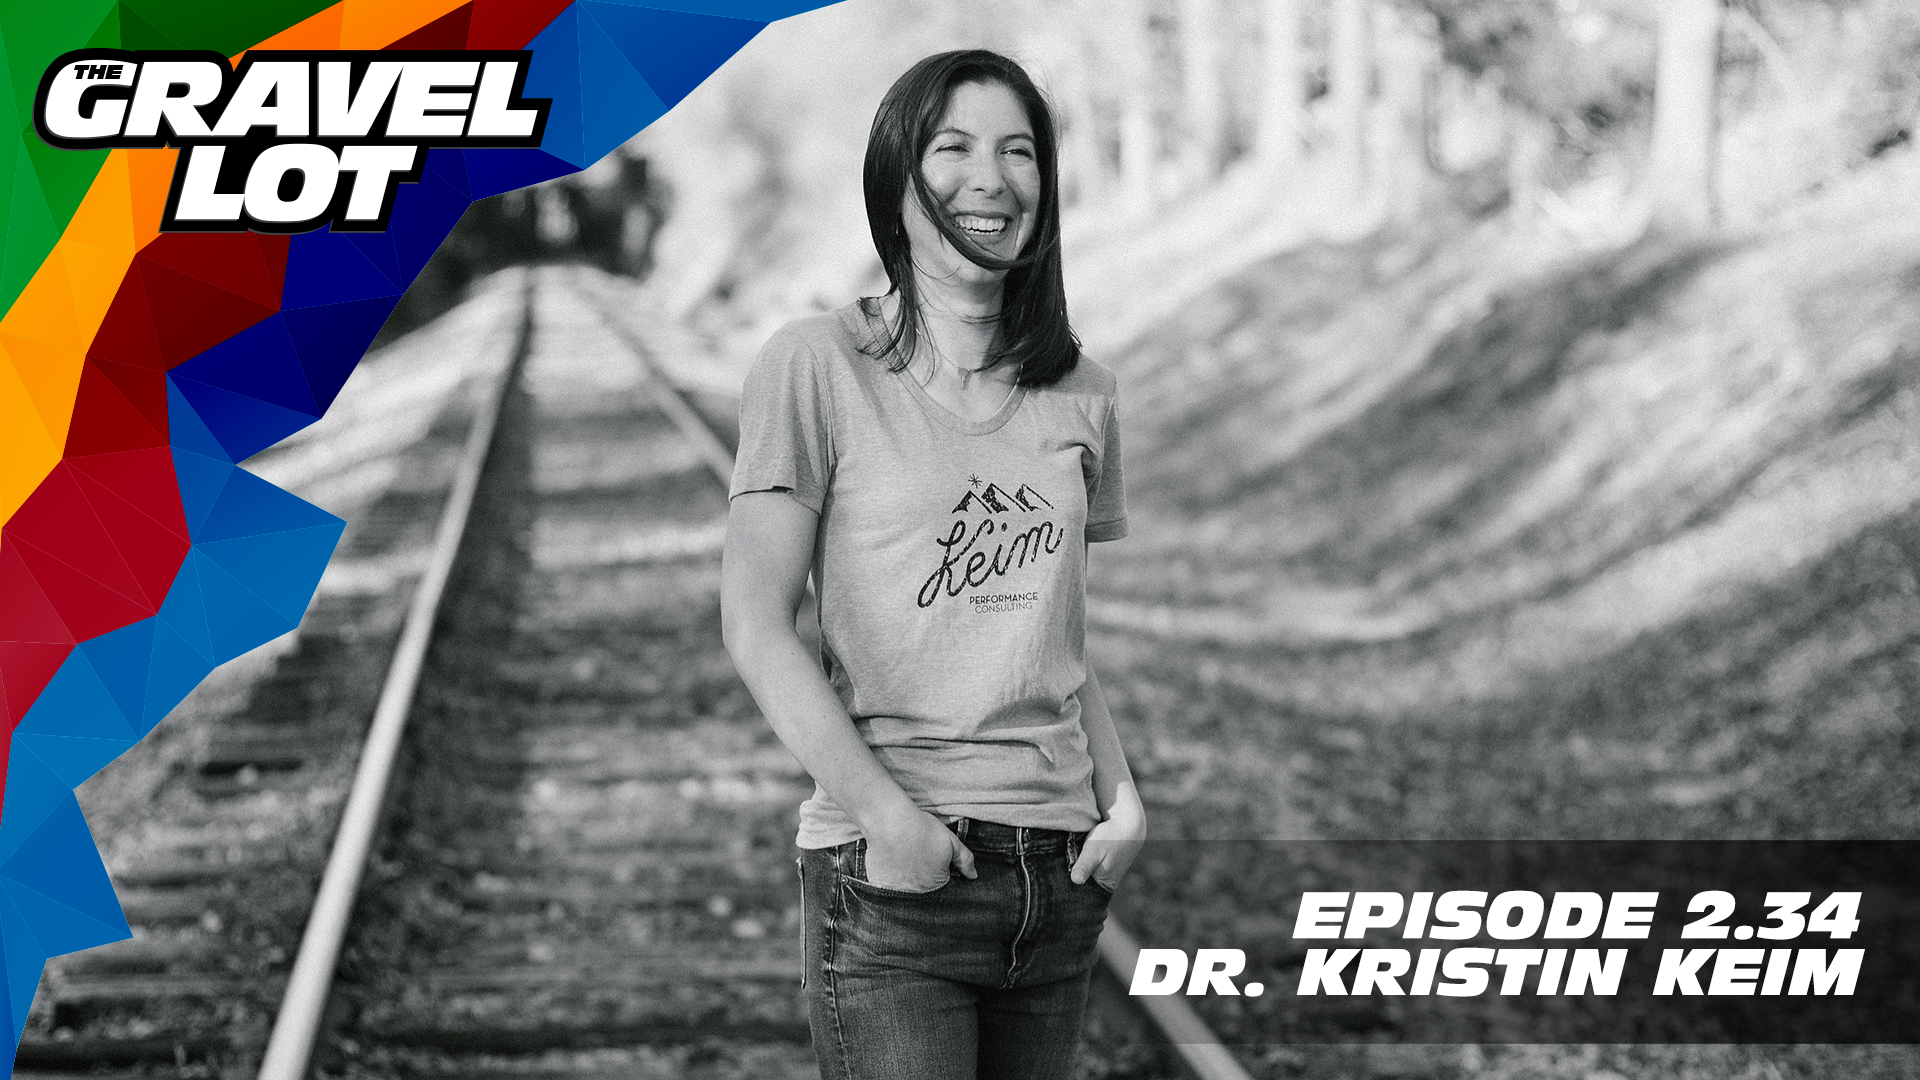 """Dr. Kristin Keim joins us talk all things psychology and happiness. Being a professional athlete is about so much more than physical strength, and slowly but surely, the stigma around mental and emotional well-being (and unicorn wolves) are finally being discussed.   Exclusive Preview of Unknown Country: One man's inspirational journey to the Dirty Kanza XL    Visit The Gravel Lot website for our latest podcast, Real Talk videos, Bonus Content, shop, social media, and everything in between.    Grimpeur Brothers Coffee: Purchase The Full Schleck or Hello Cyclocross Friends Espresso and support WAP today!    Handup Gloves: Use code """"PEBBLE$"""" for 20% off EVERYTHING in store.    RoadID: Save $10 off ANY order over $20.    Magas Law Firm:    Be Free Ride Bikes:    Noxgear: Use code """"PEBBLES"""" for 35% off any item.   Subscribe to The Gravel Lot on the  Wide Angle Podium Network and become a member TODAY and get access to EXCLUSIVE bonus content.   Learn more about Undertipper and download their latest album """"Y'all"""" at:  http://undertipper.bandcamp.com/"""